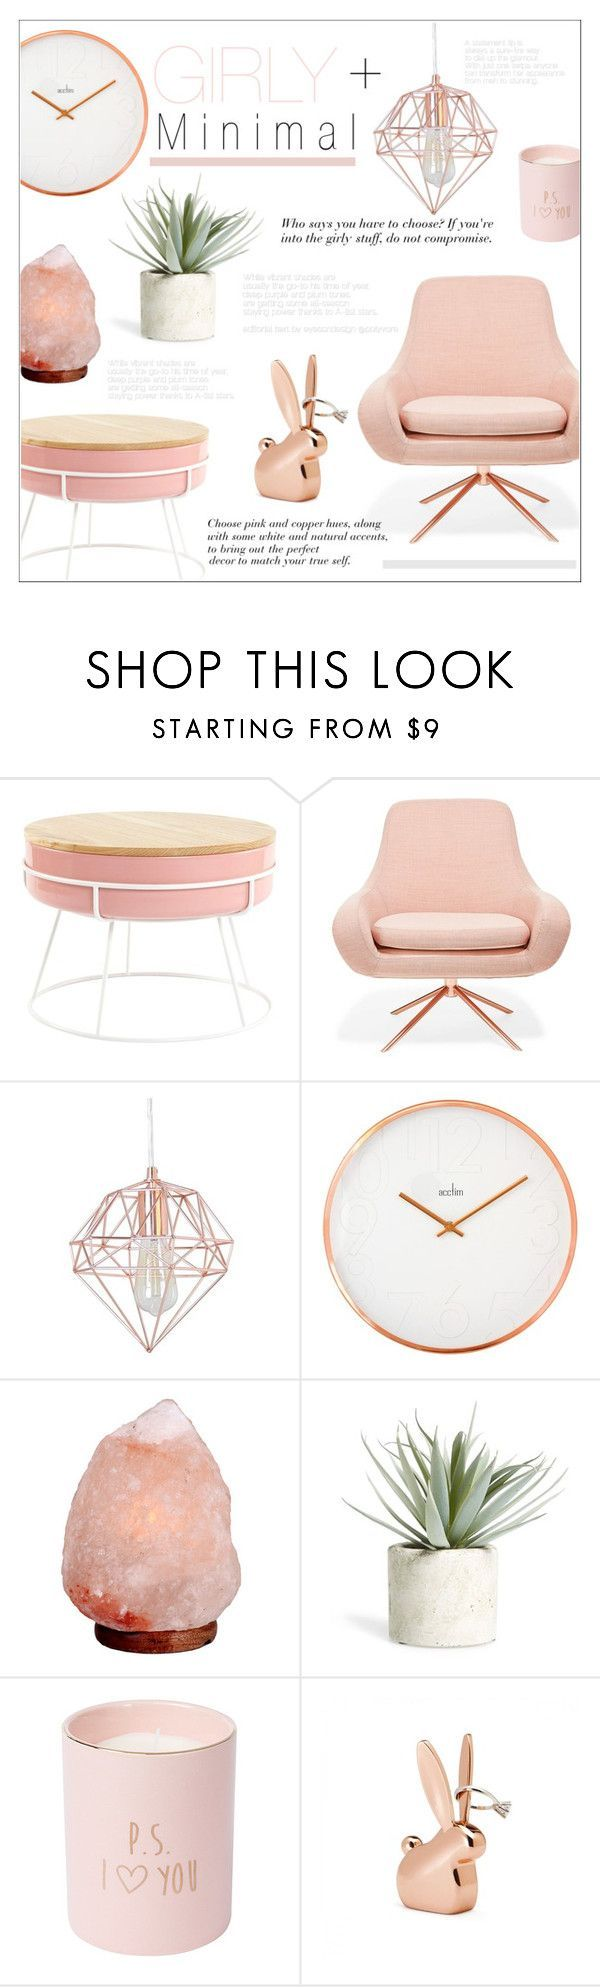 cool Girly & Minimal by http://www.top-100-homedecorpictures.us/home-decor-accessories/girly-minimal/